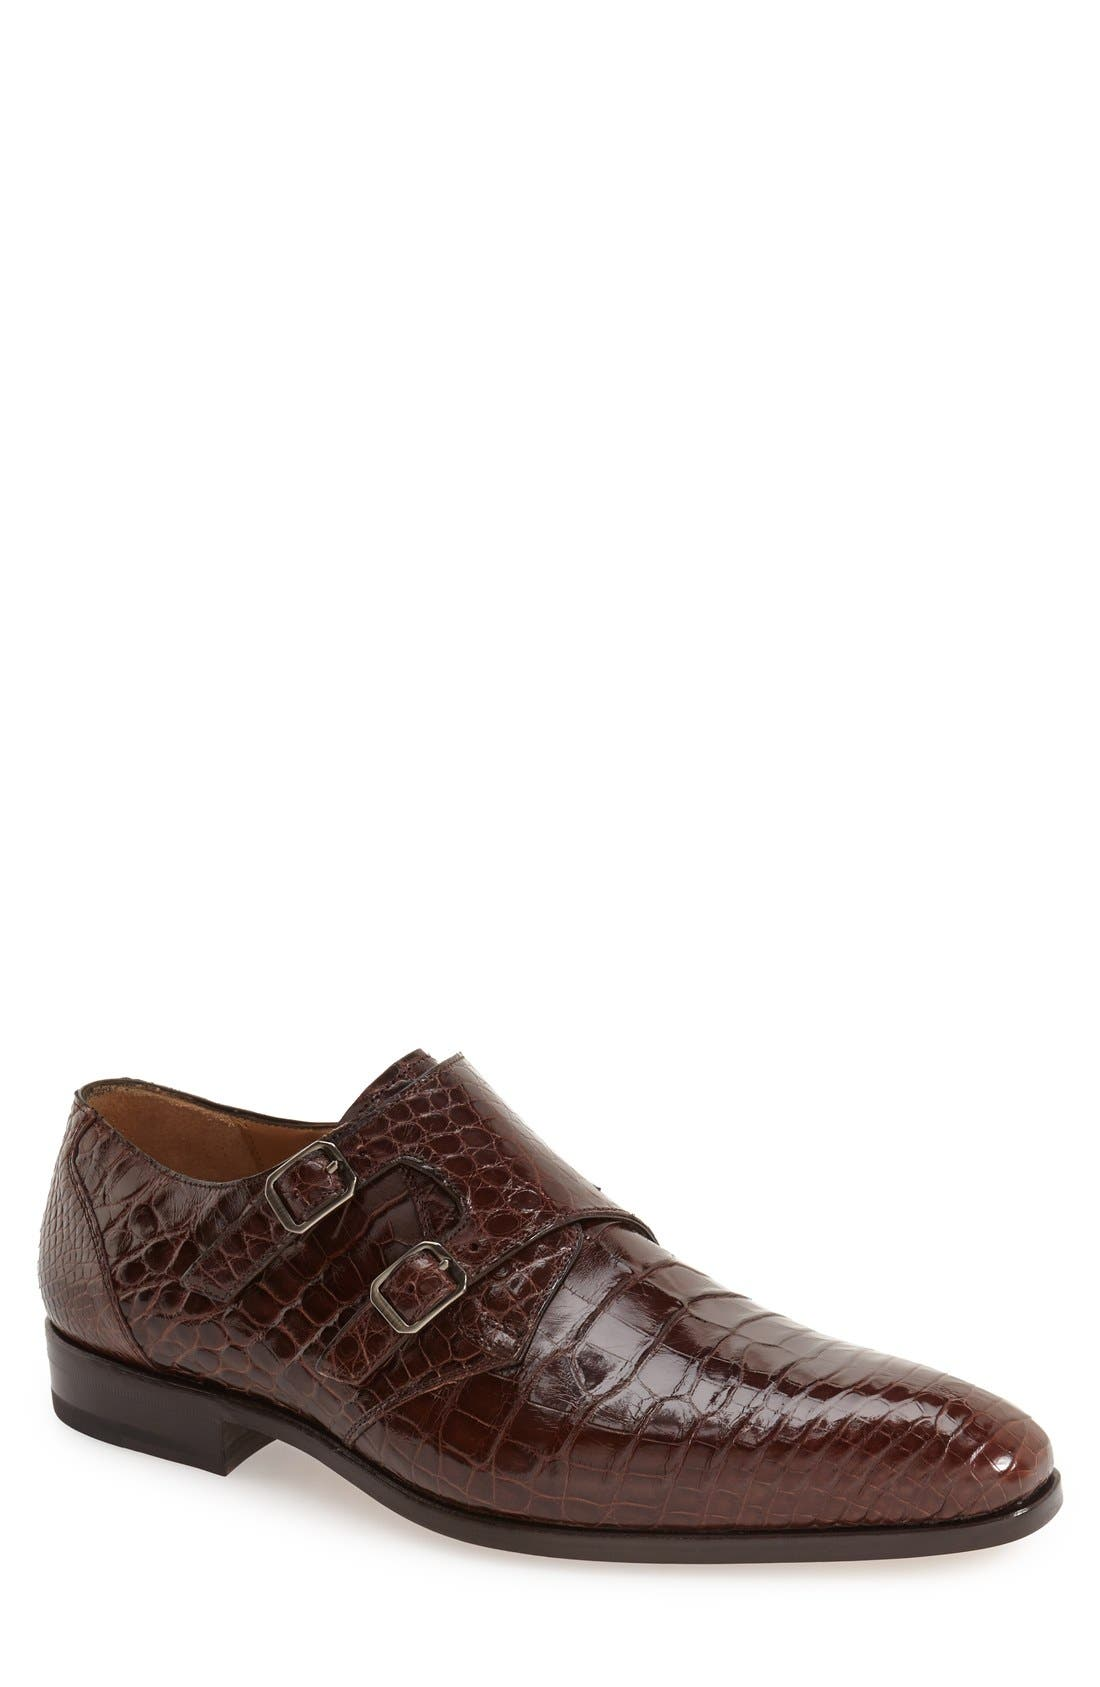 'Agra' Double Monk Strap Shoe,                             Main thumbnail 2, color,